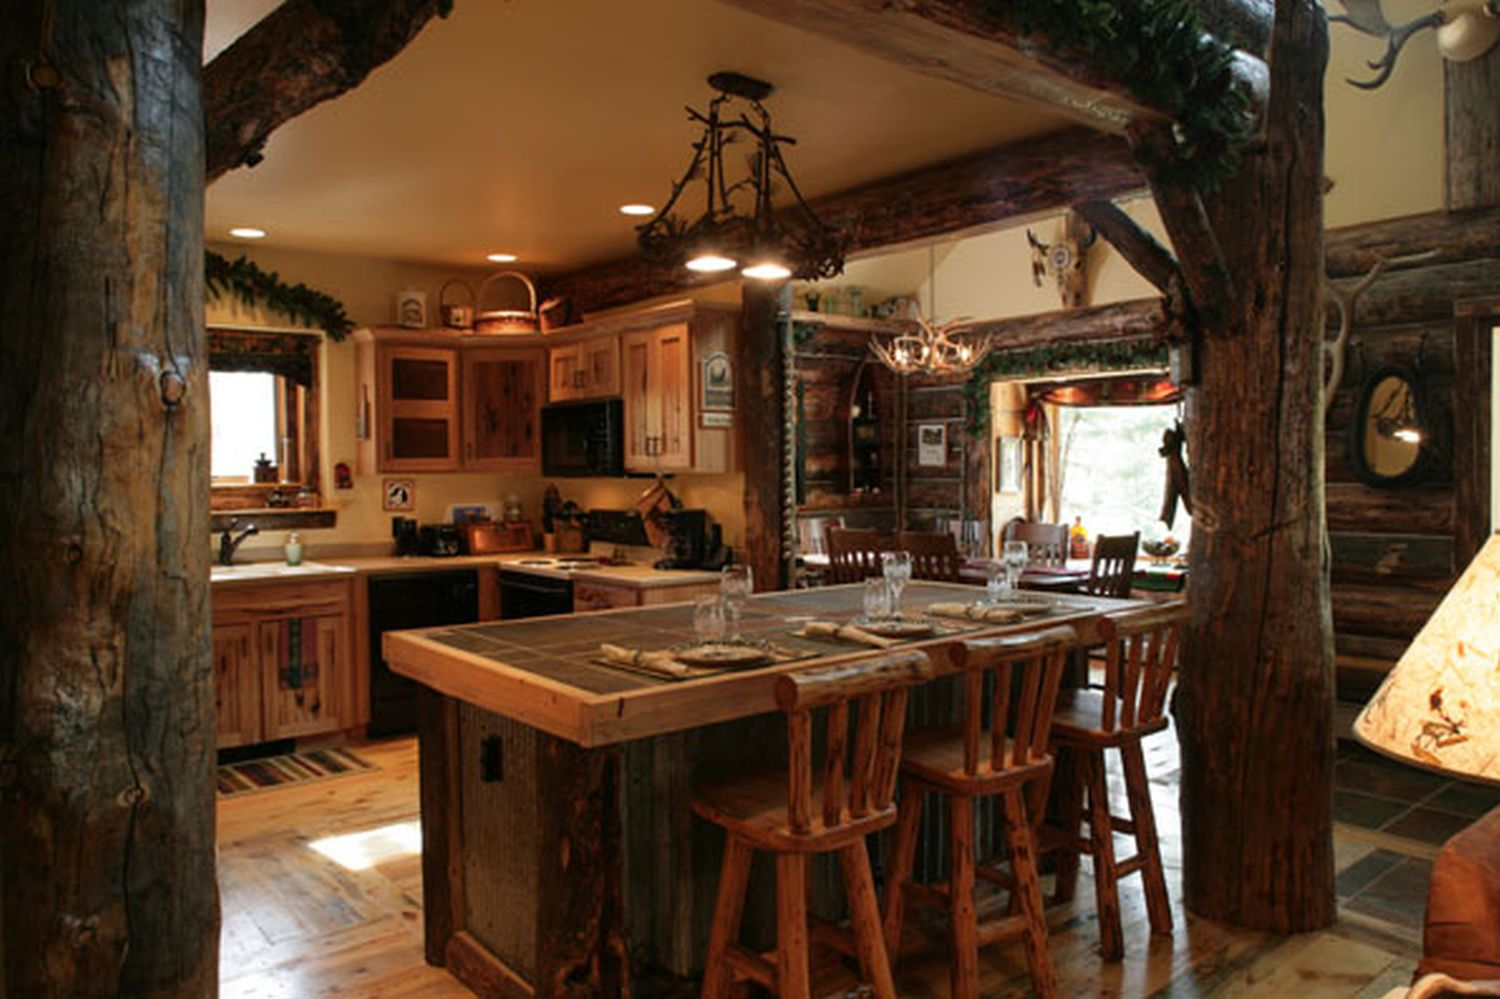 15 Traditional & Rustic Warm Interior Wood Decorating ... on Traditional Rustic Decor  id=37694